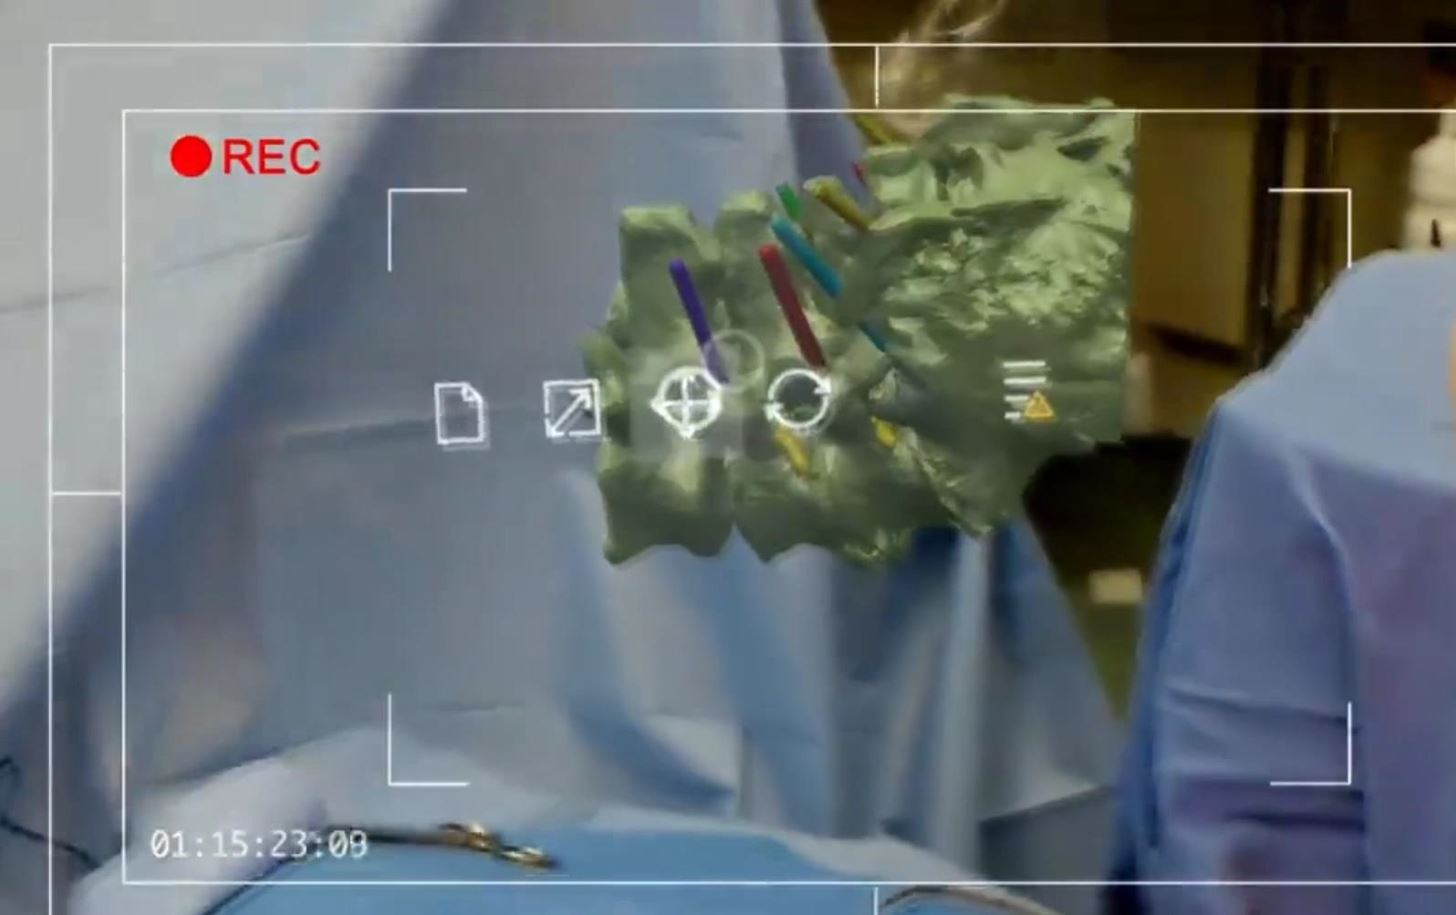 Two Doctors Simplify Spinal Surgery with the HoloLens